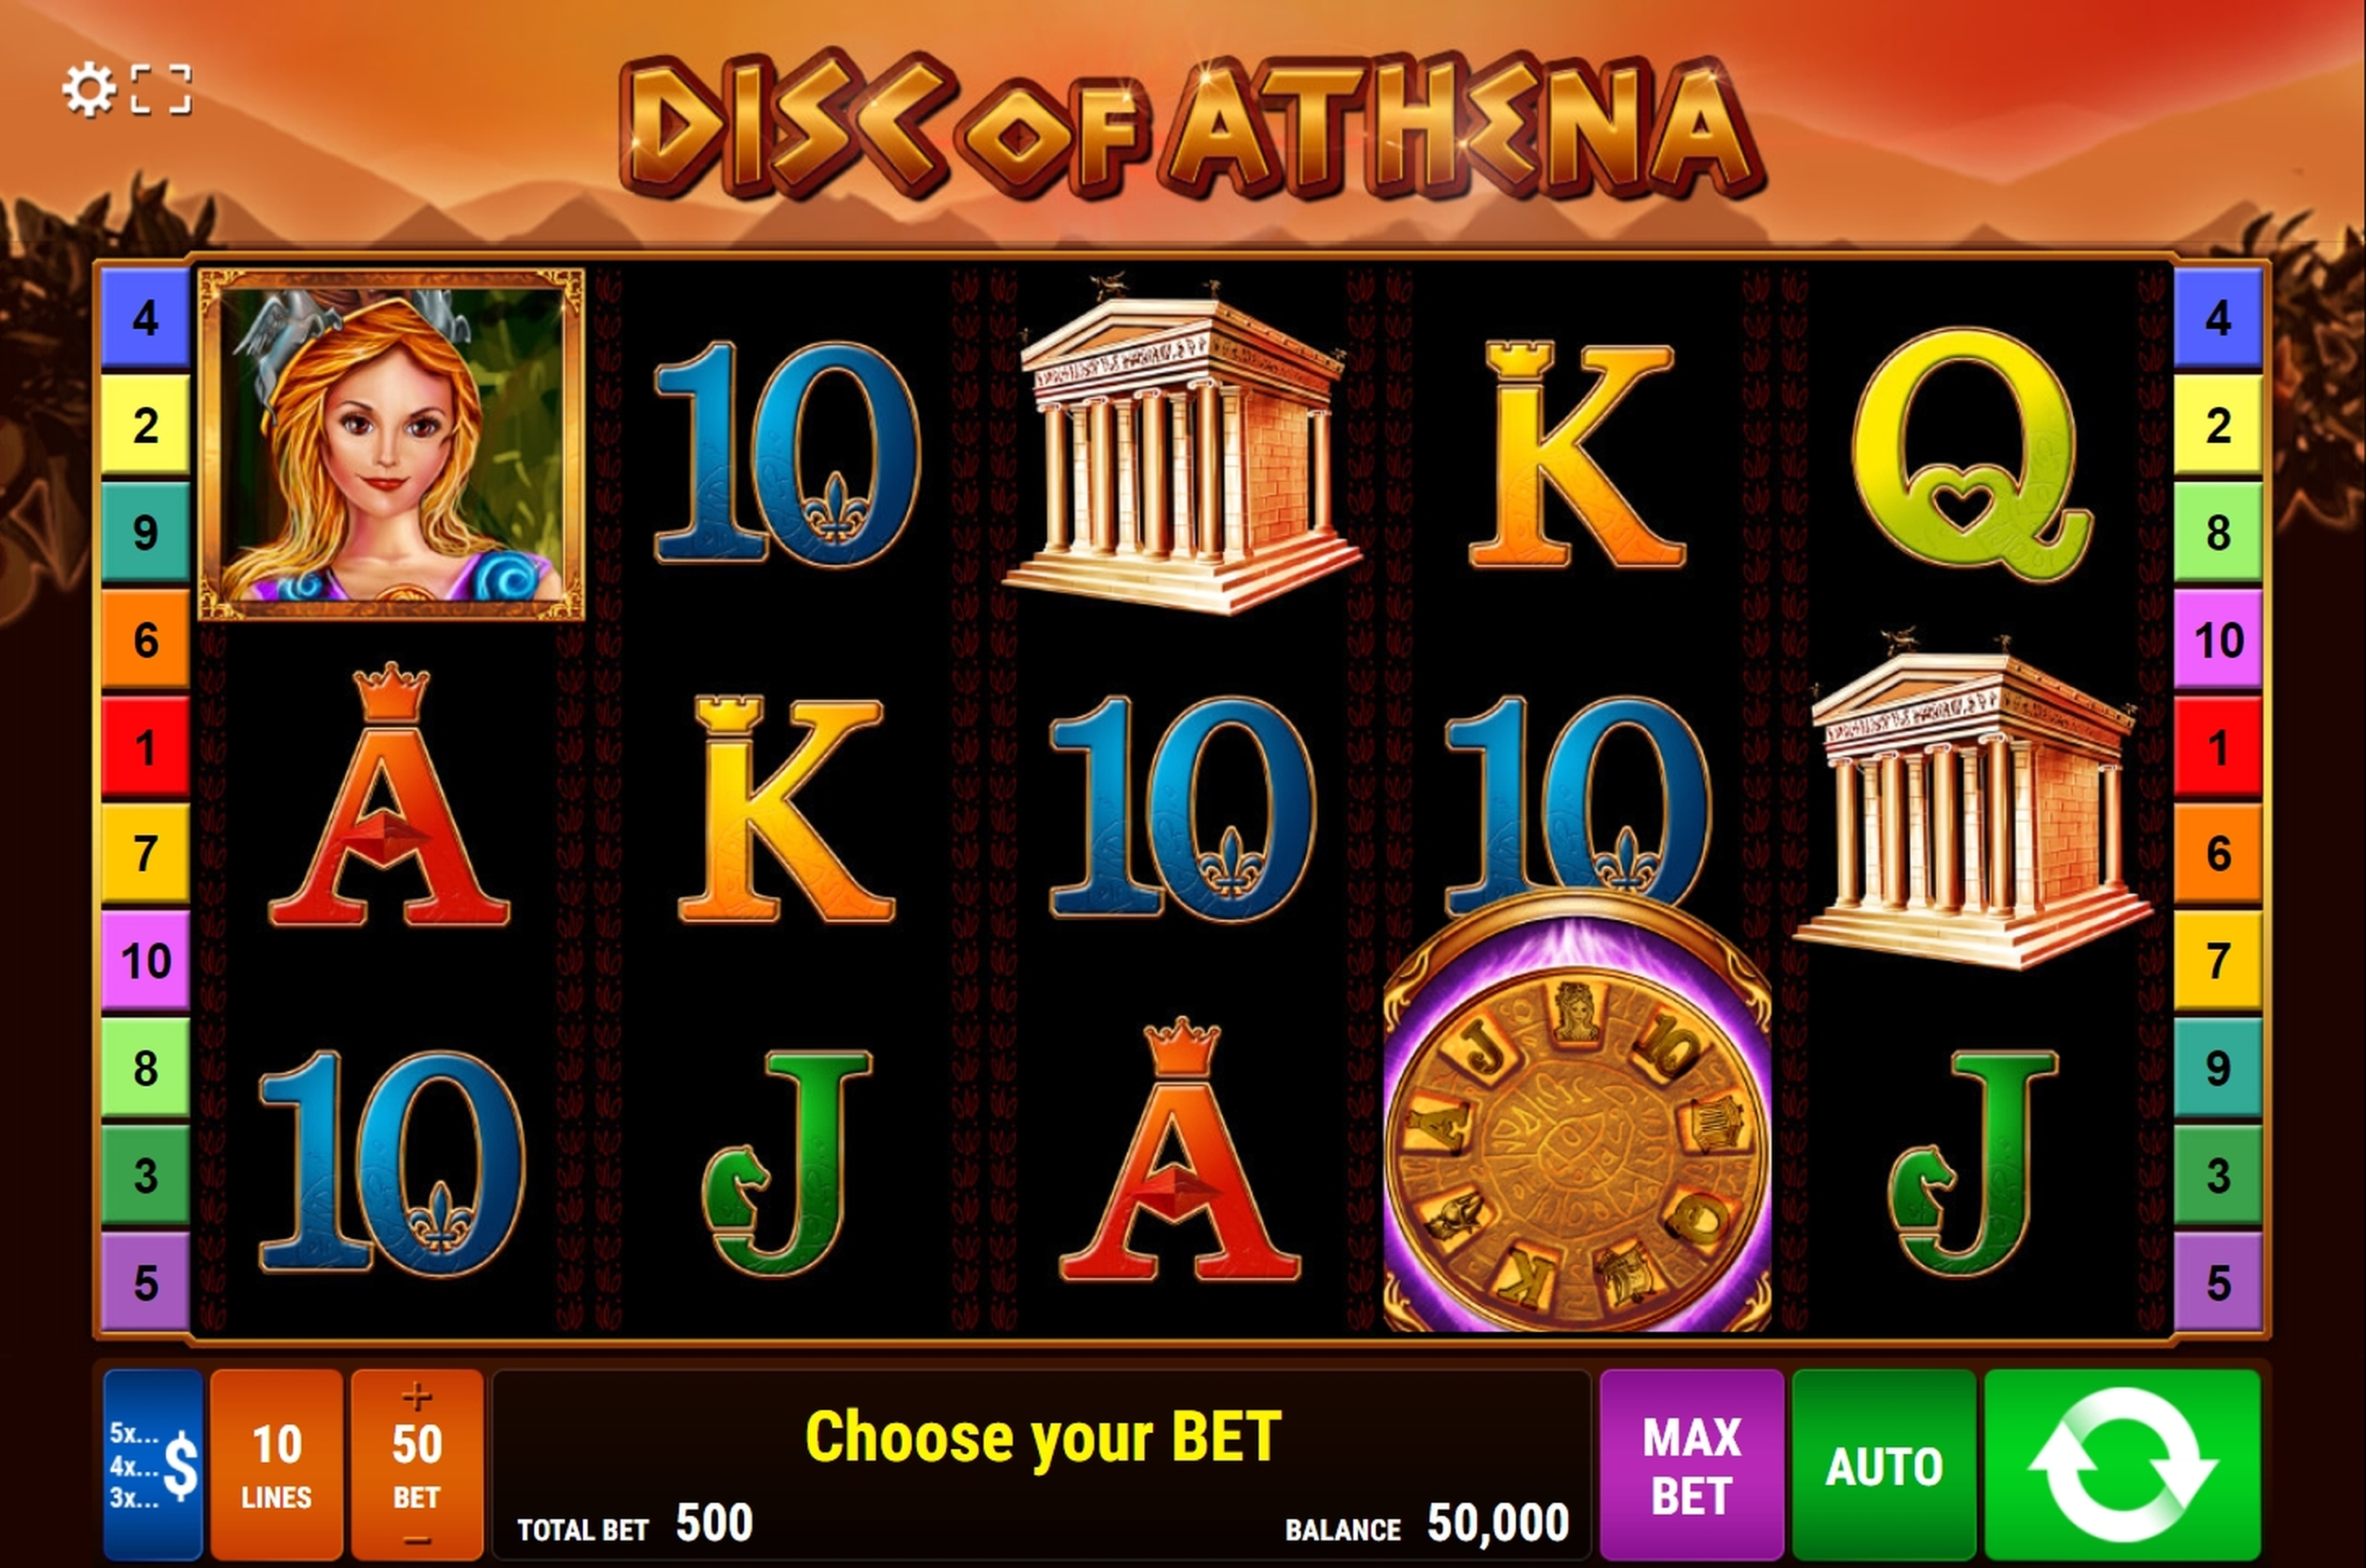 Reels in Disc of Athena Slot Game by Bally Wulff